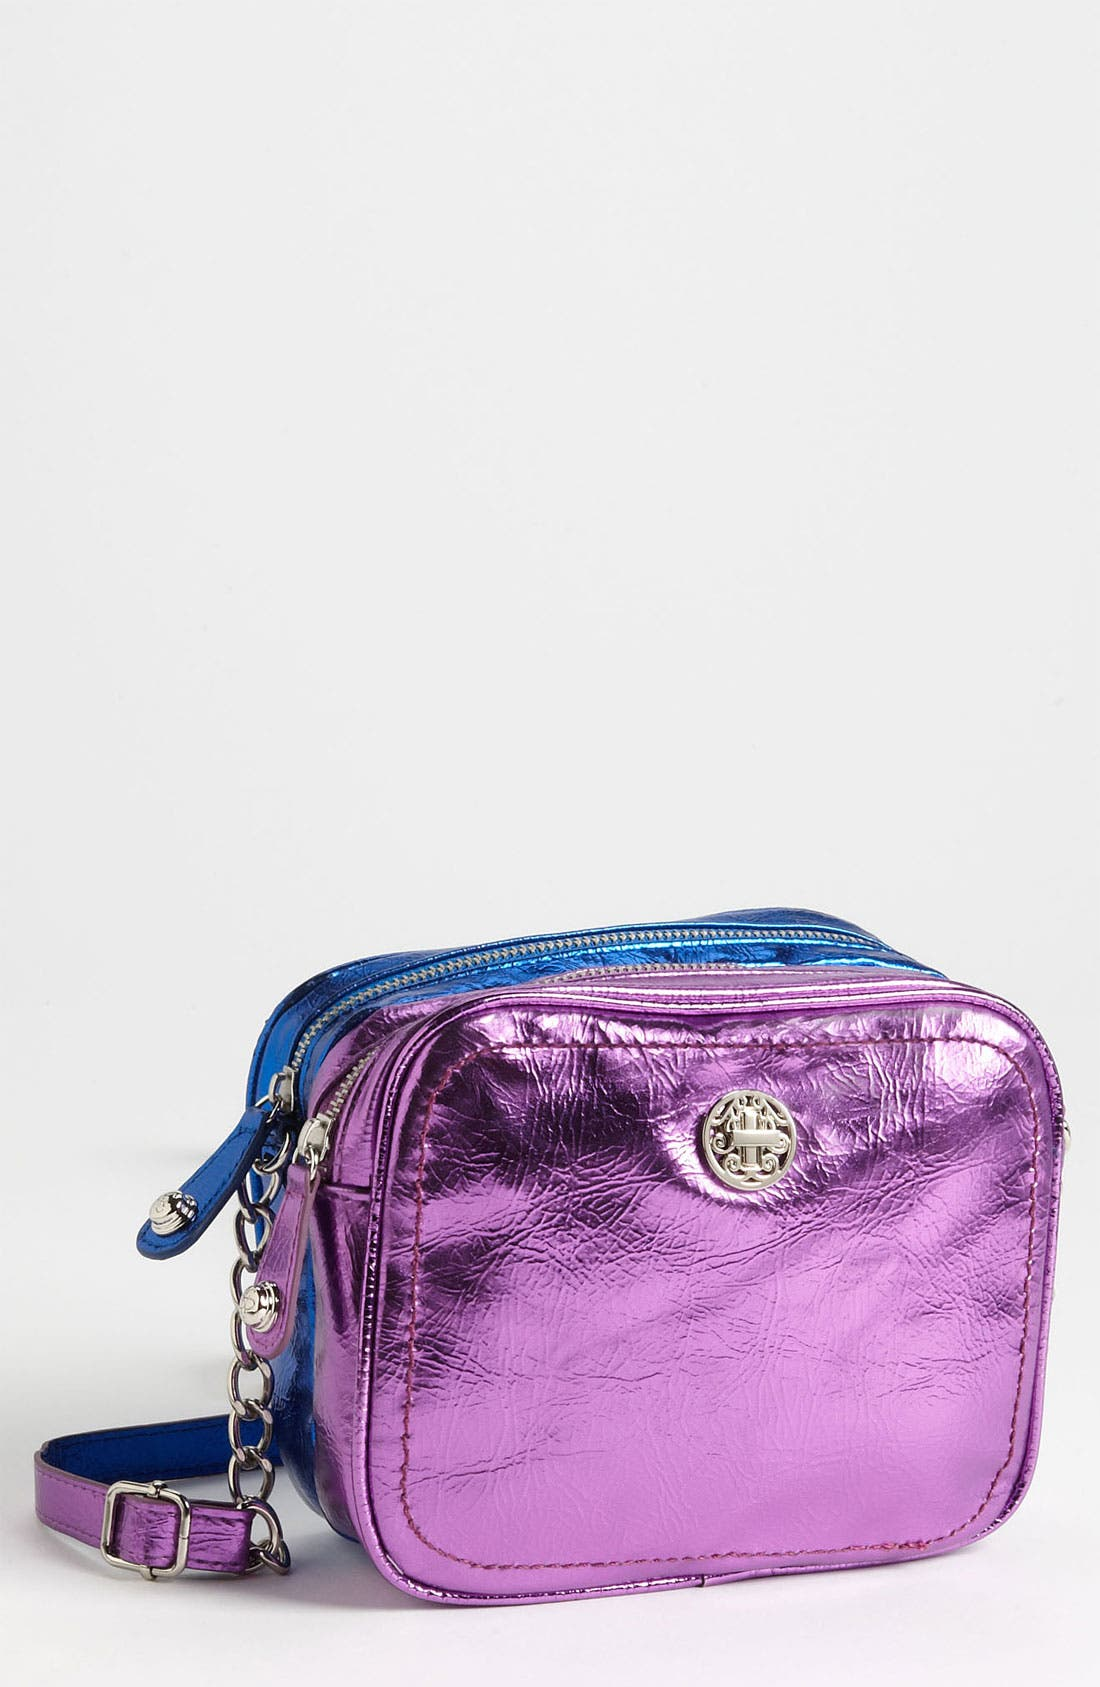 Alternate Image 1 Selected - Jessica Simpson 'Double Take' Crossbody Bag